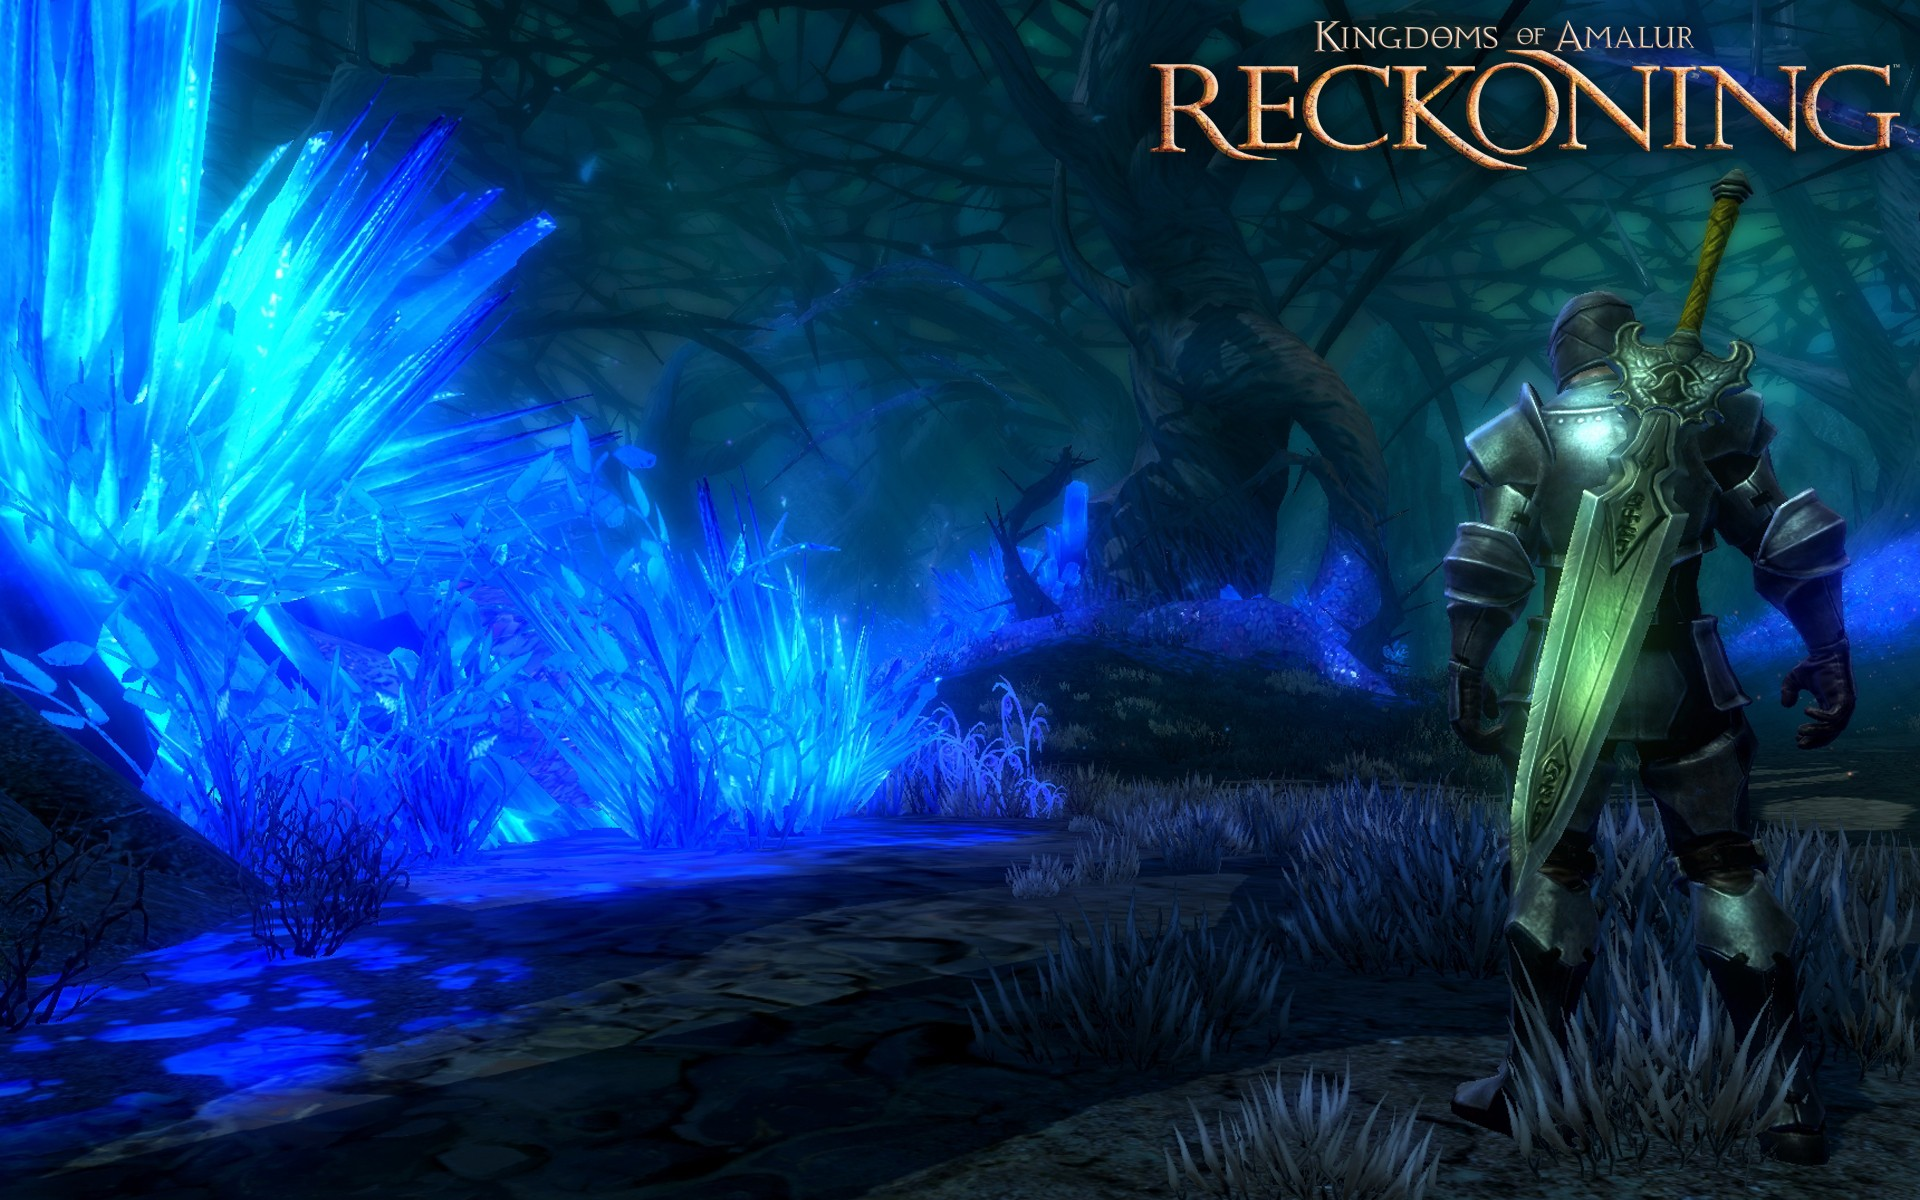 An open-world action rpg, kingdoms of amalur: reckoning is set in amalur